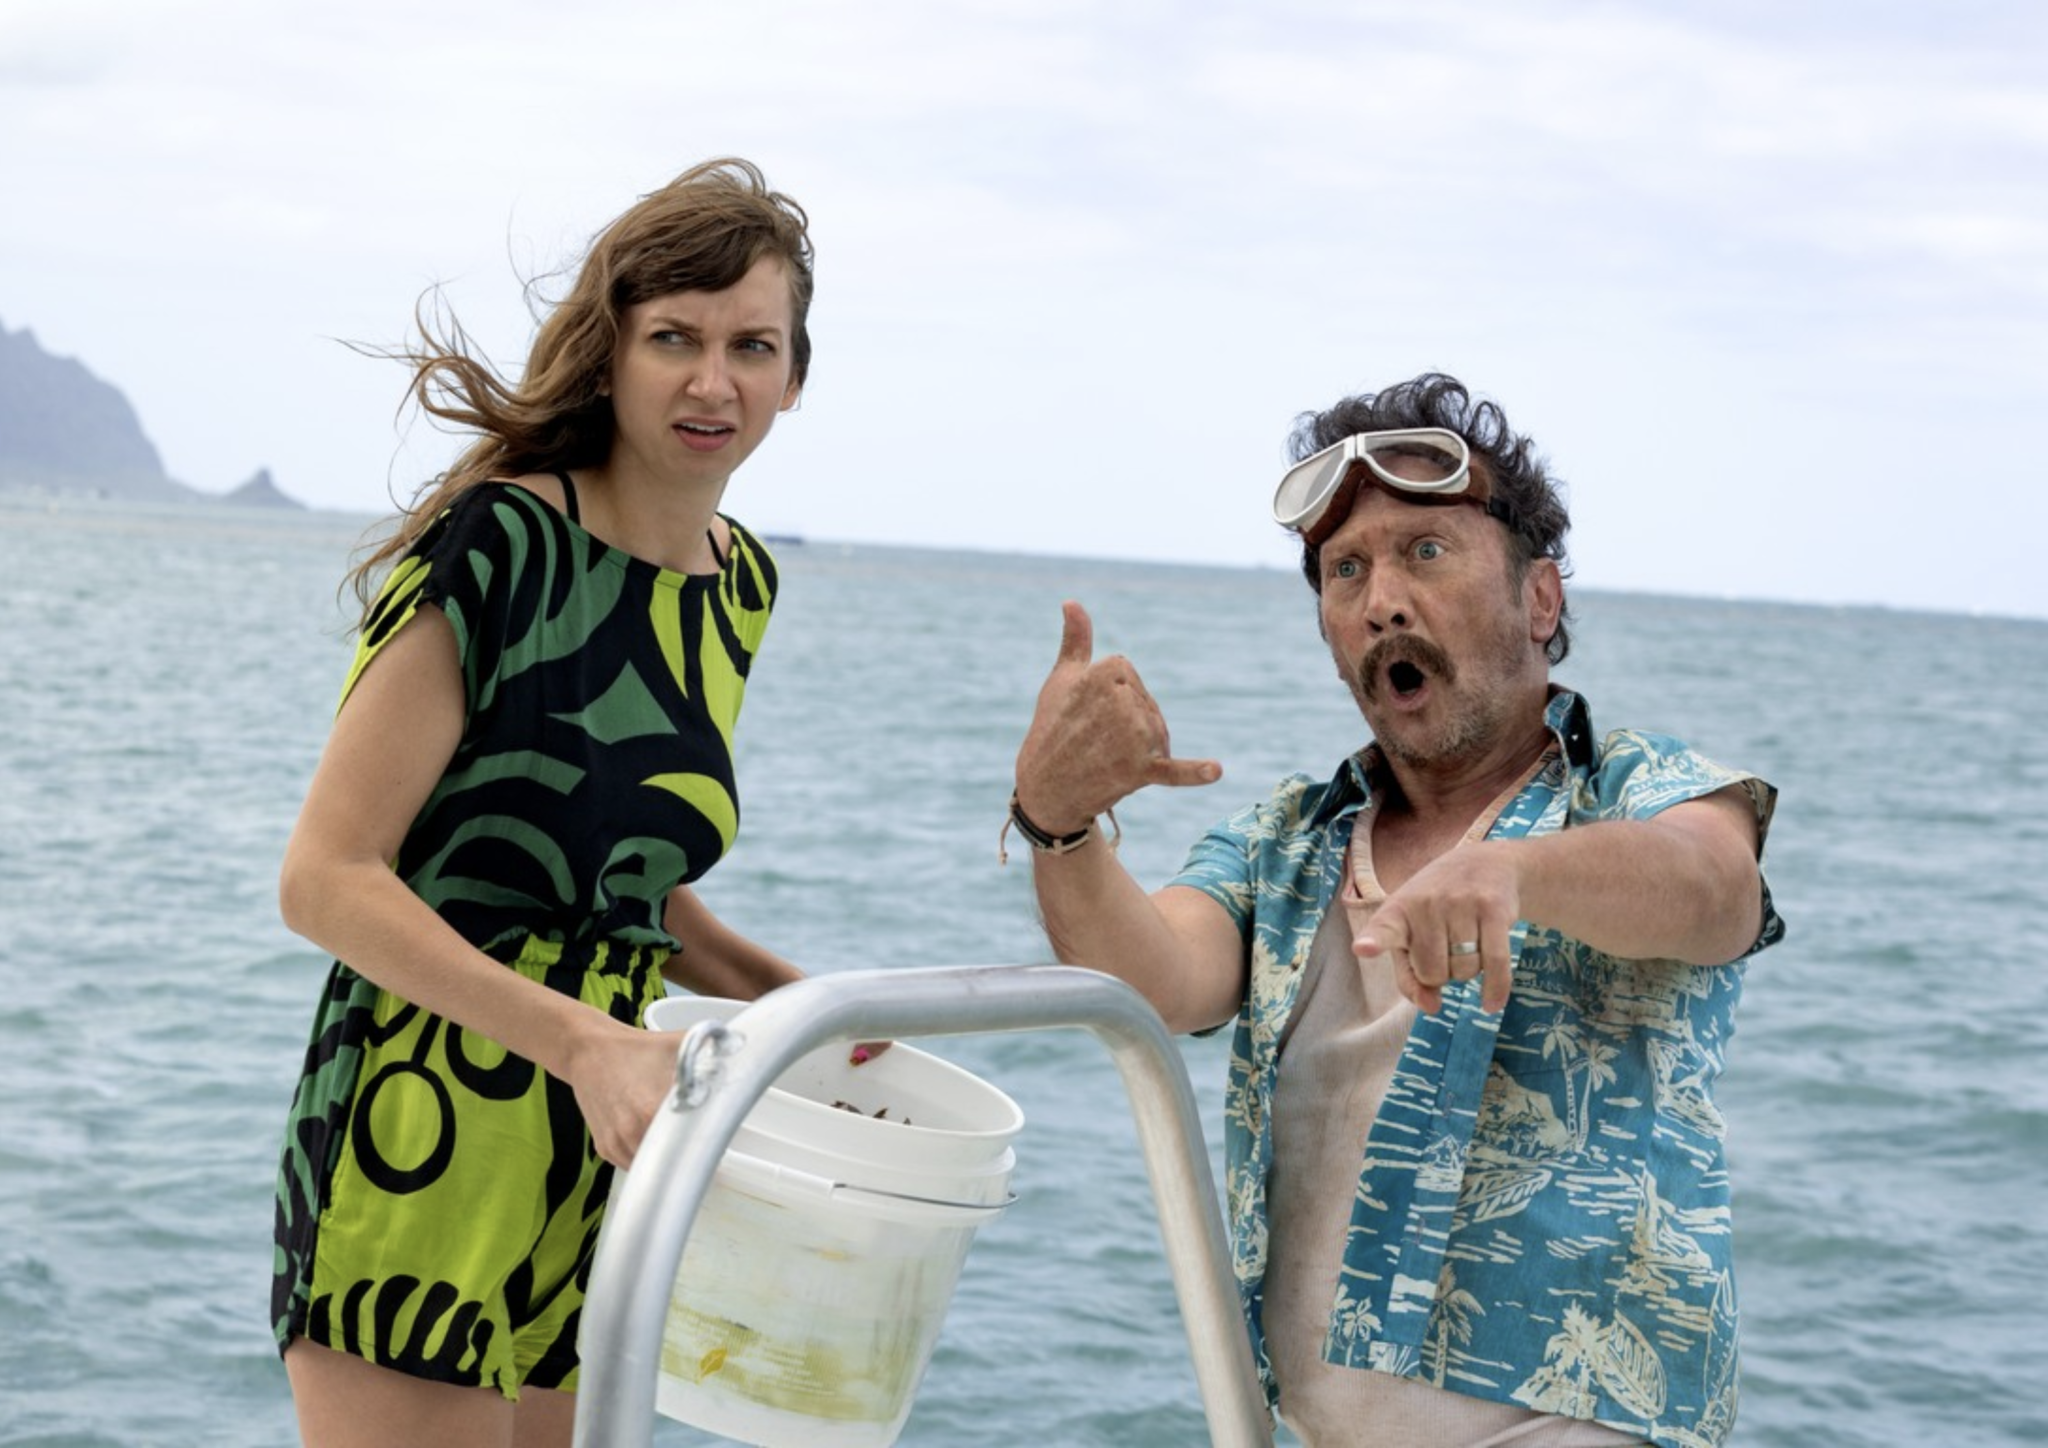 """Dolphins and You Boat Featured in Netflix Film """"The Wrong Missy"""""""